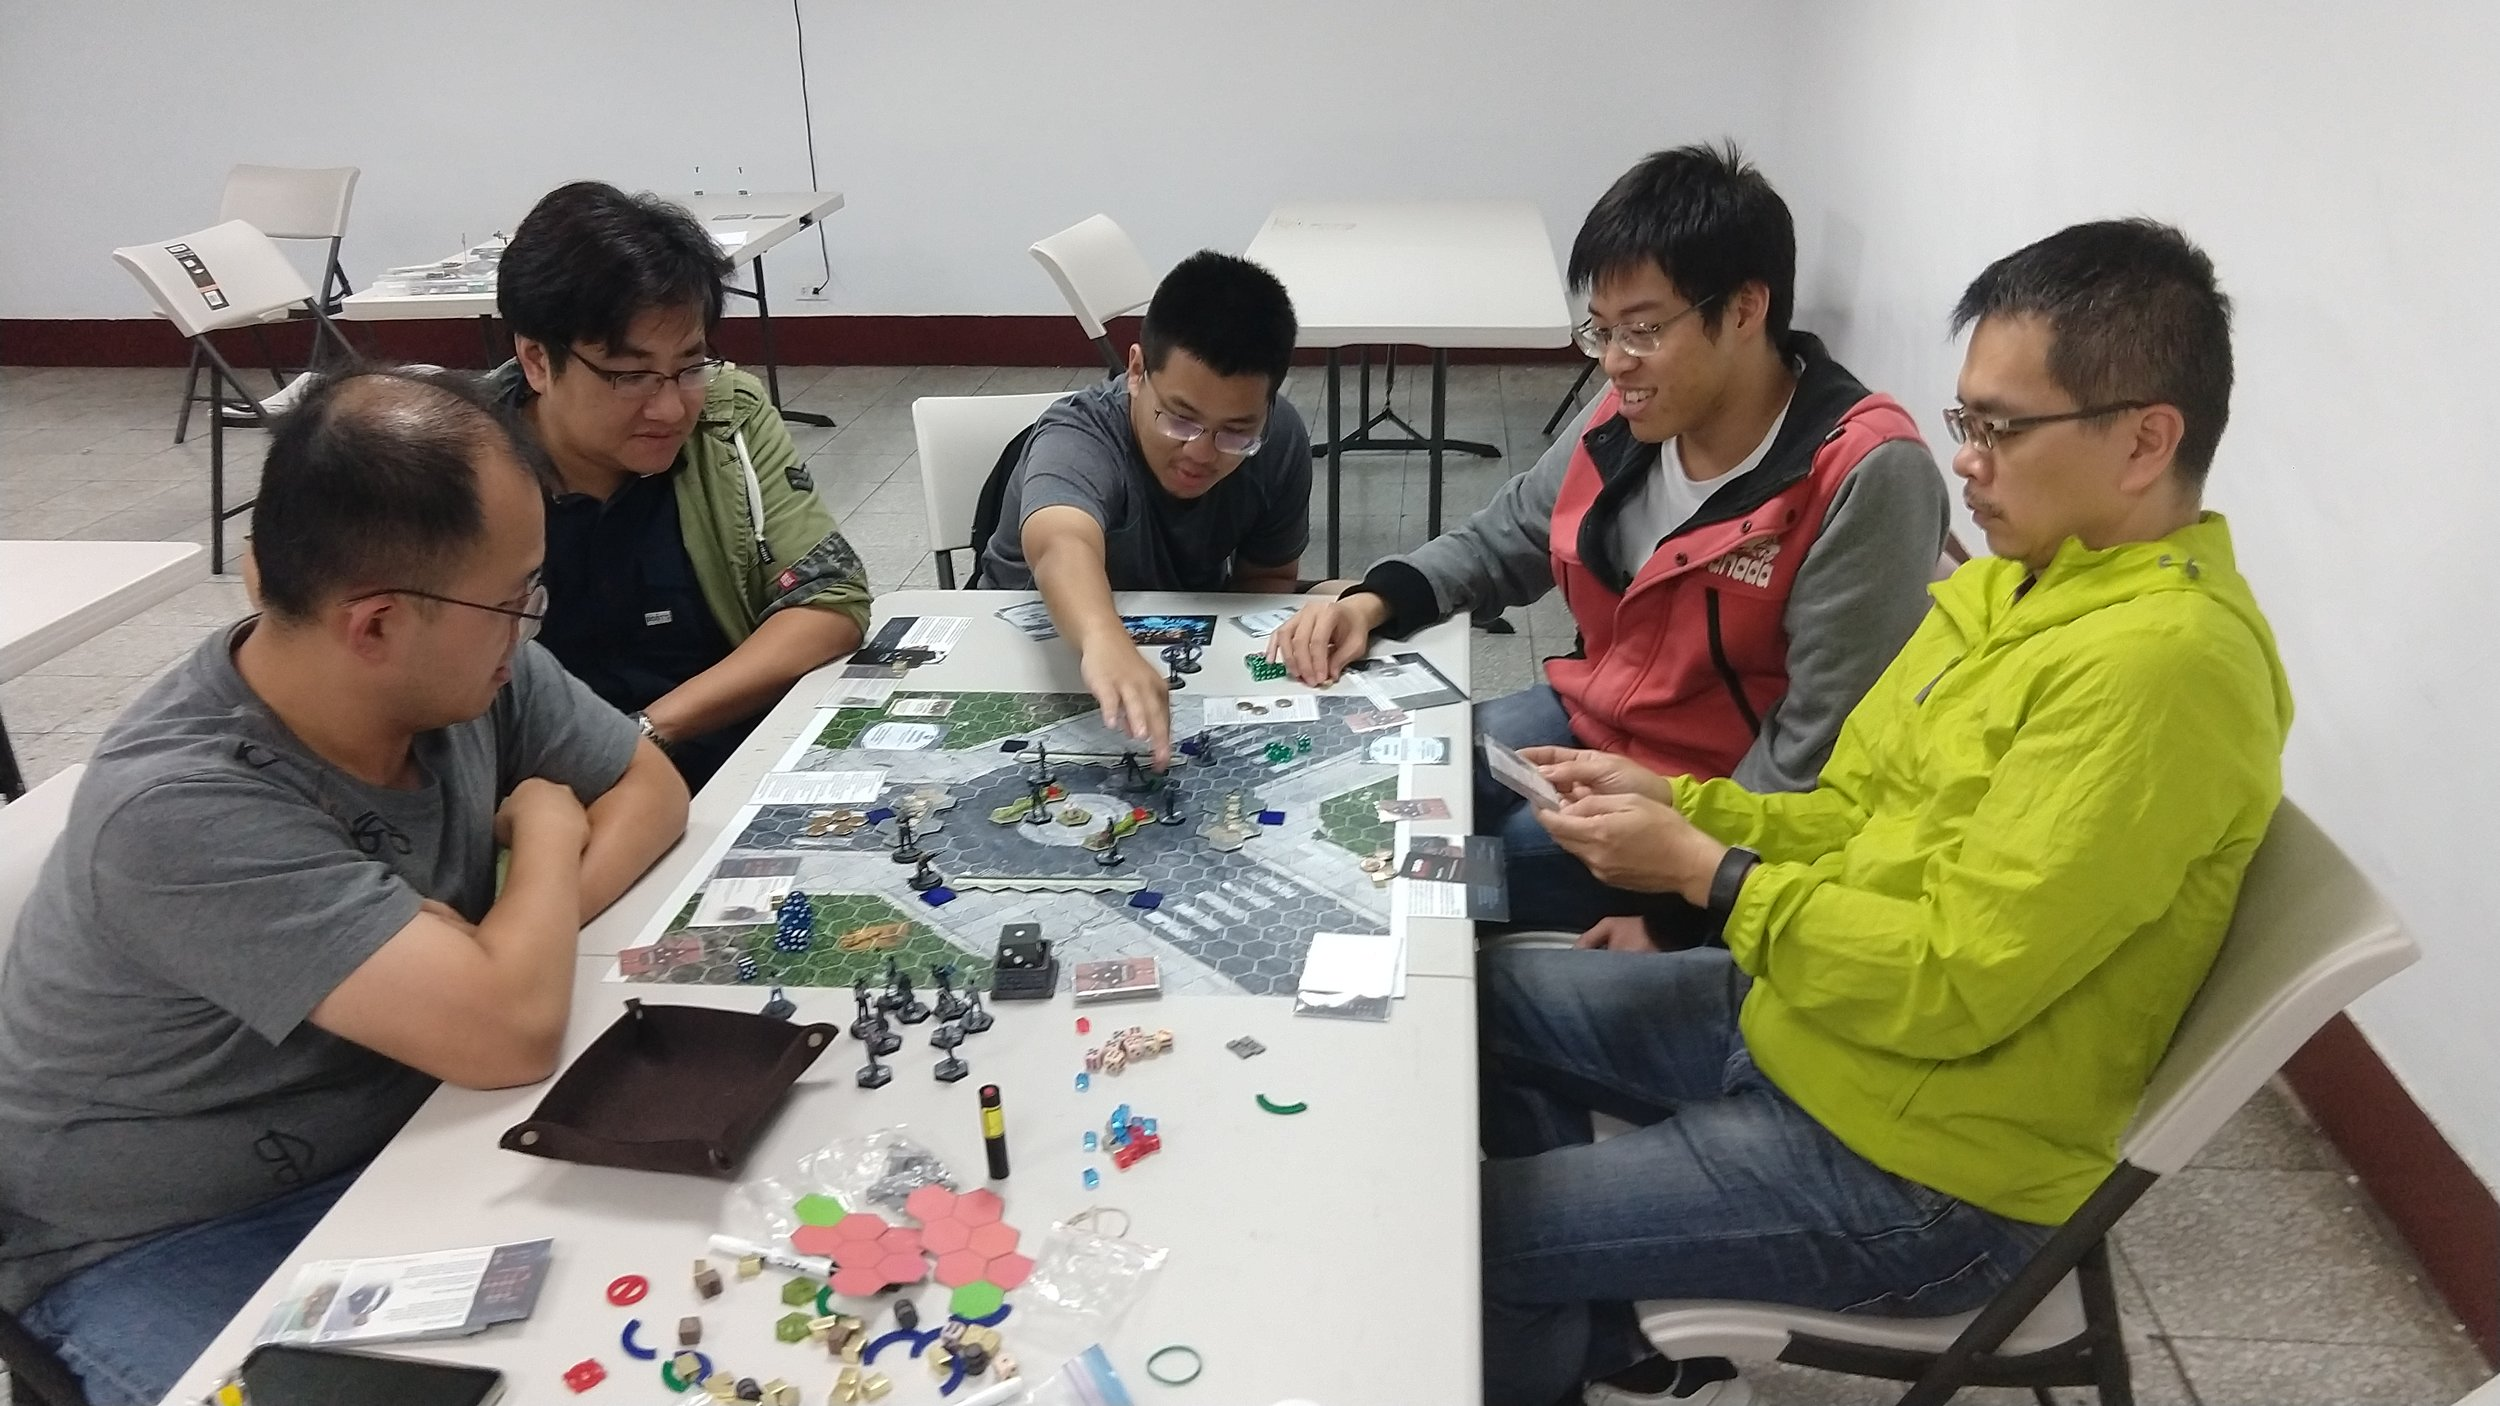 The Taiwan crew helped us figure out that we needed to change the CyMS rules.